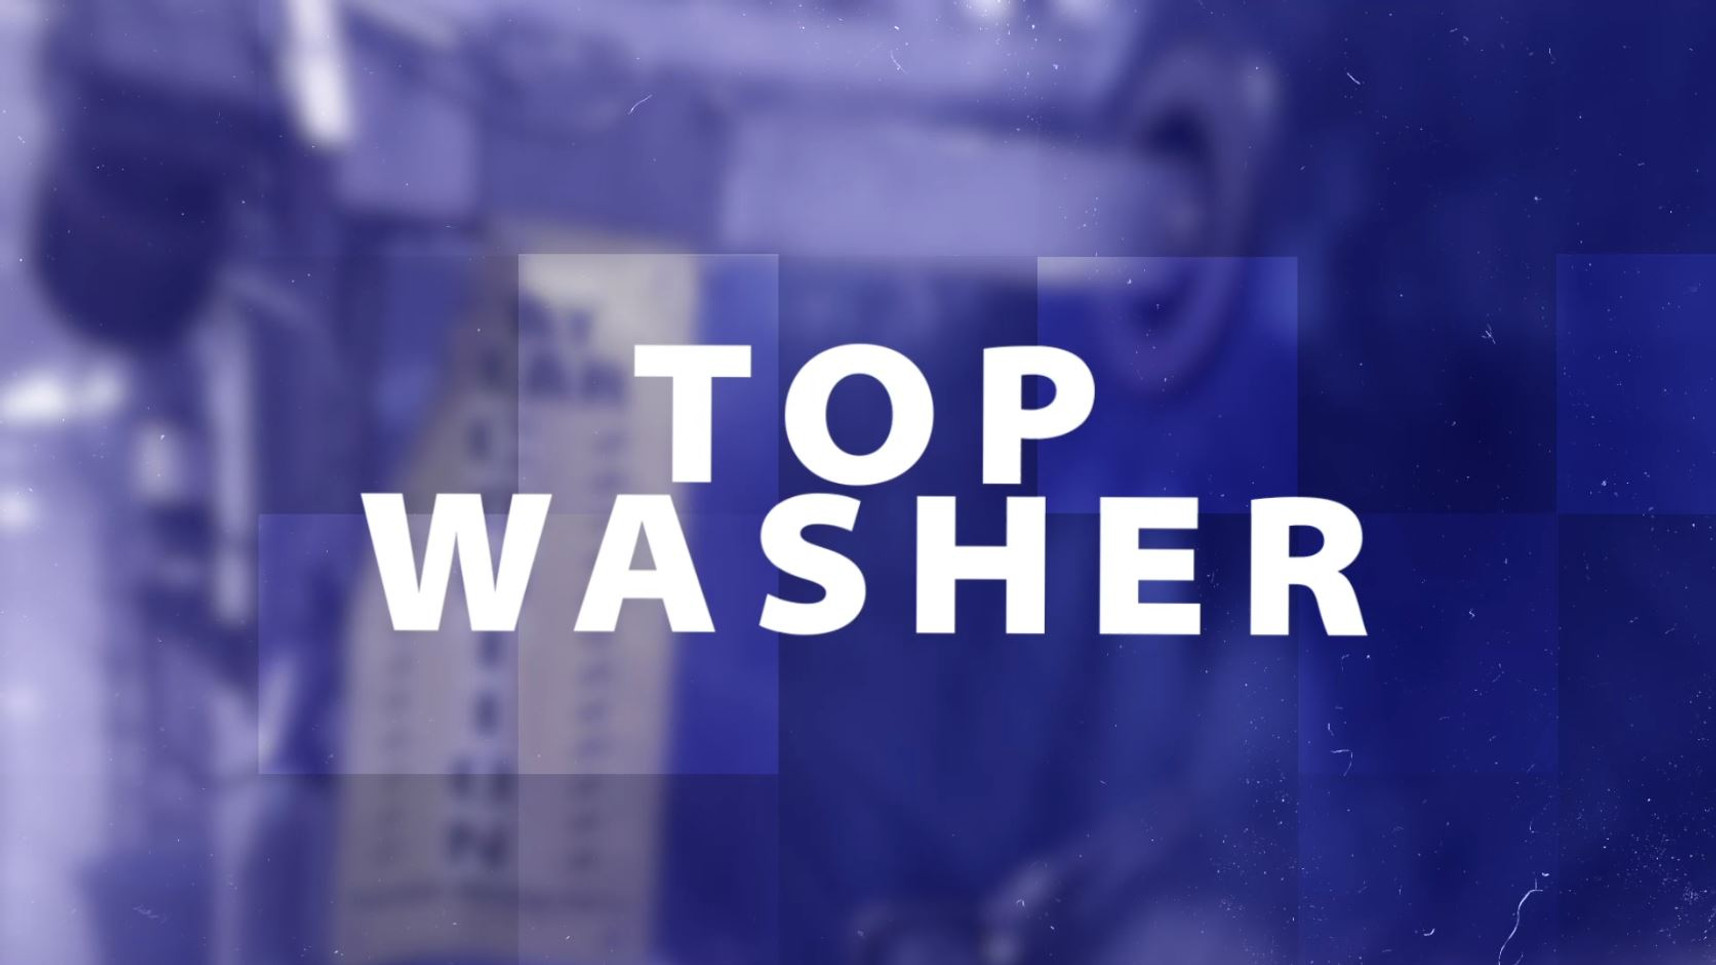 Top Washer